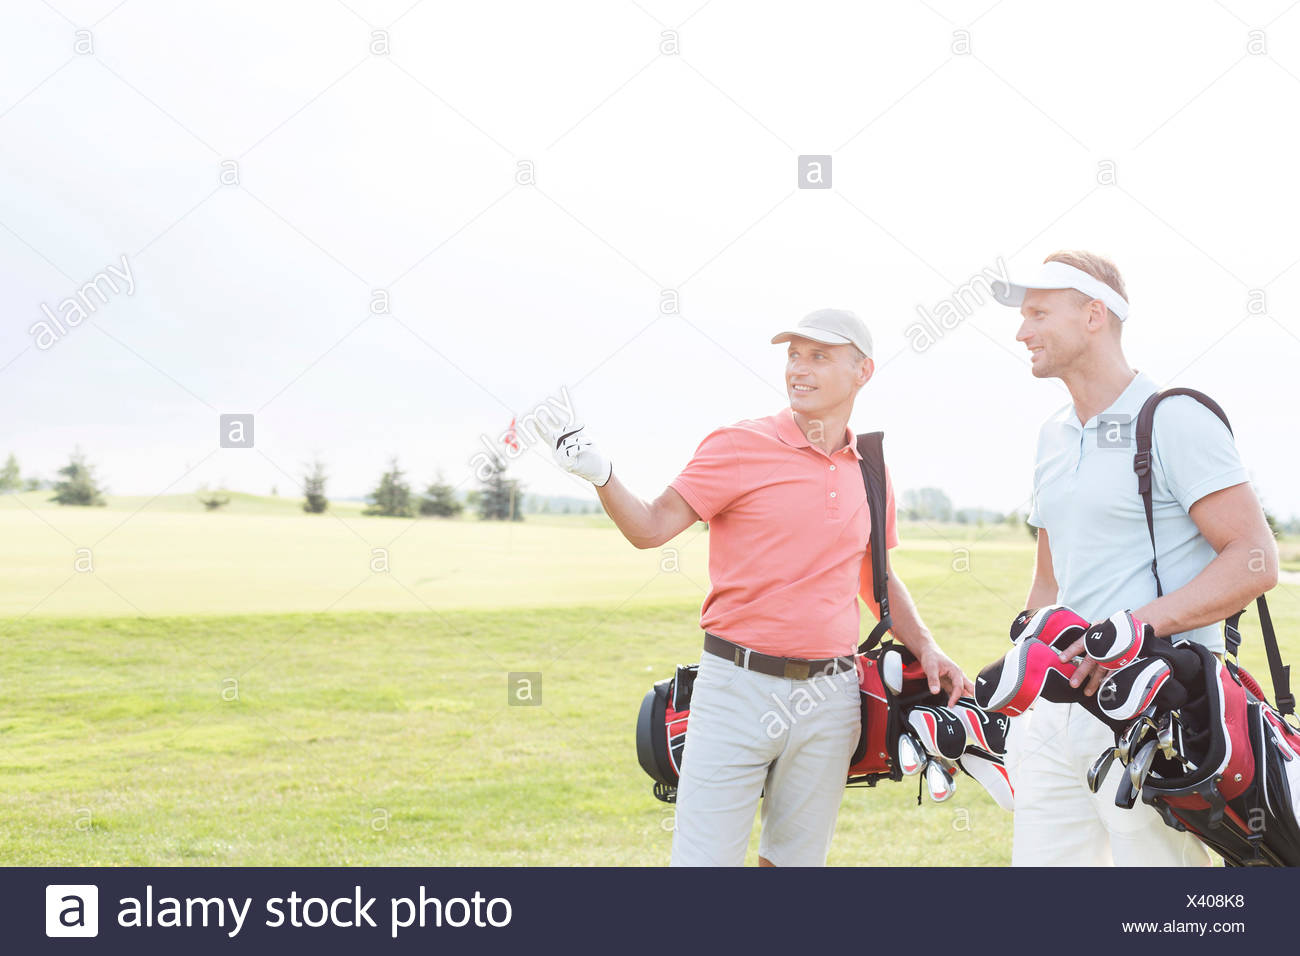 Man showing something to friend at golf course against clear sky - Stock Image